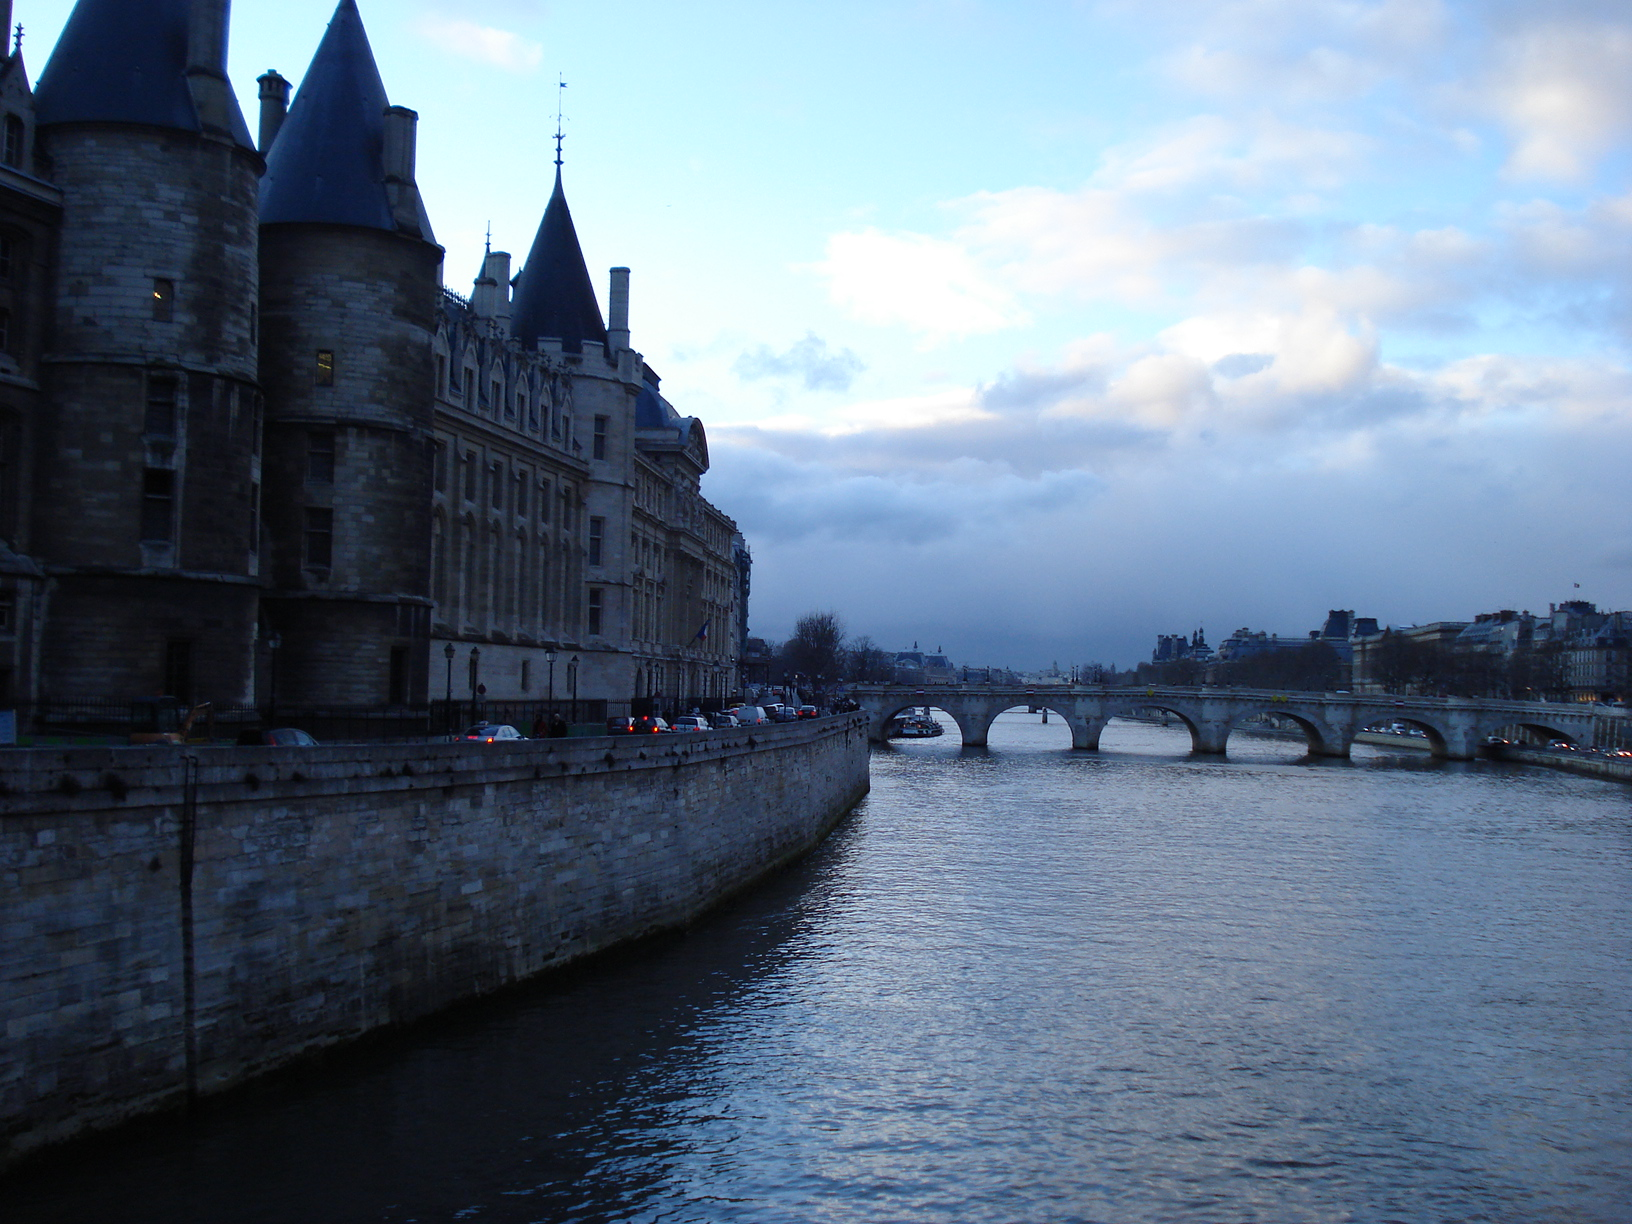 Seine, Paris. By Packing my Suitcase.